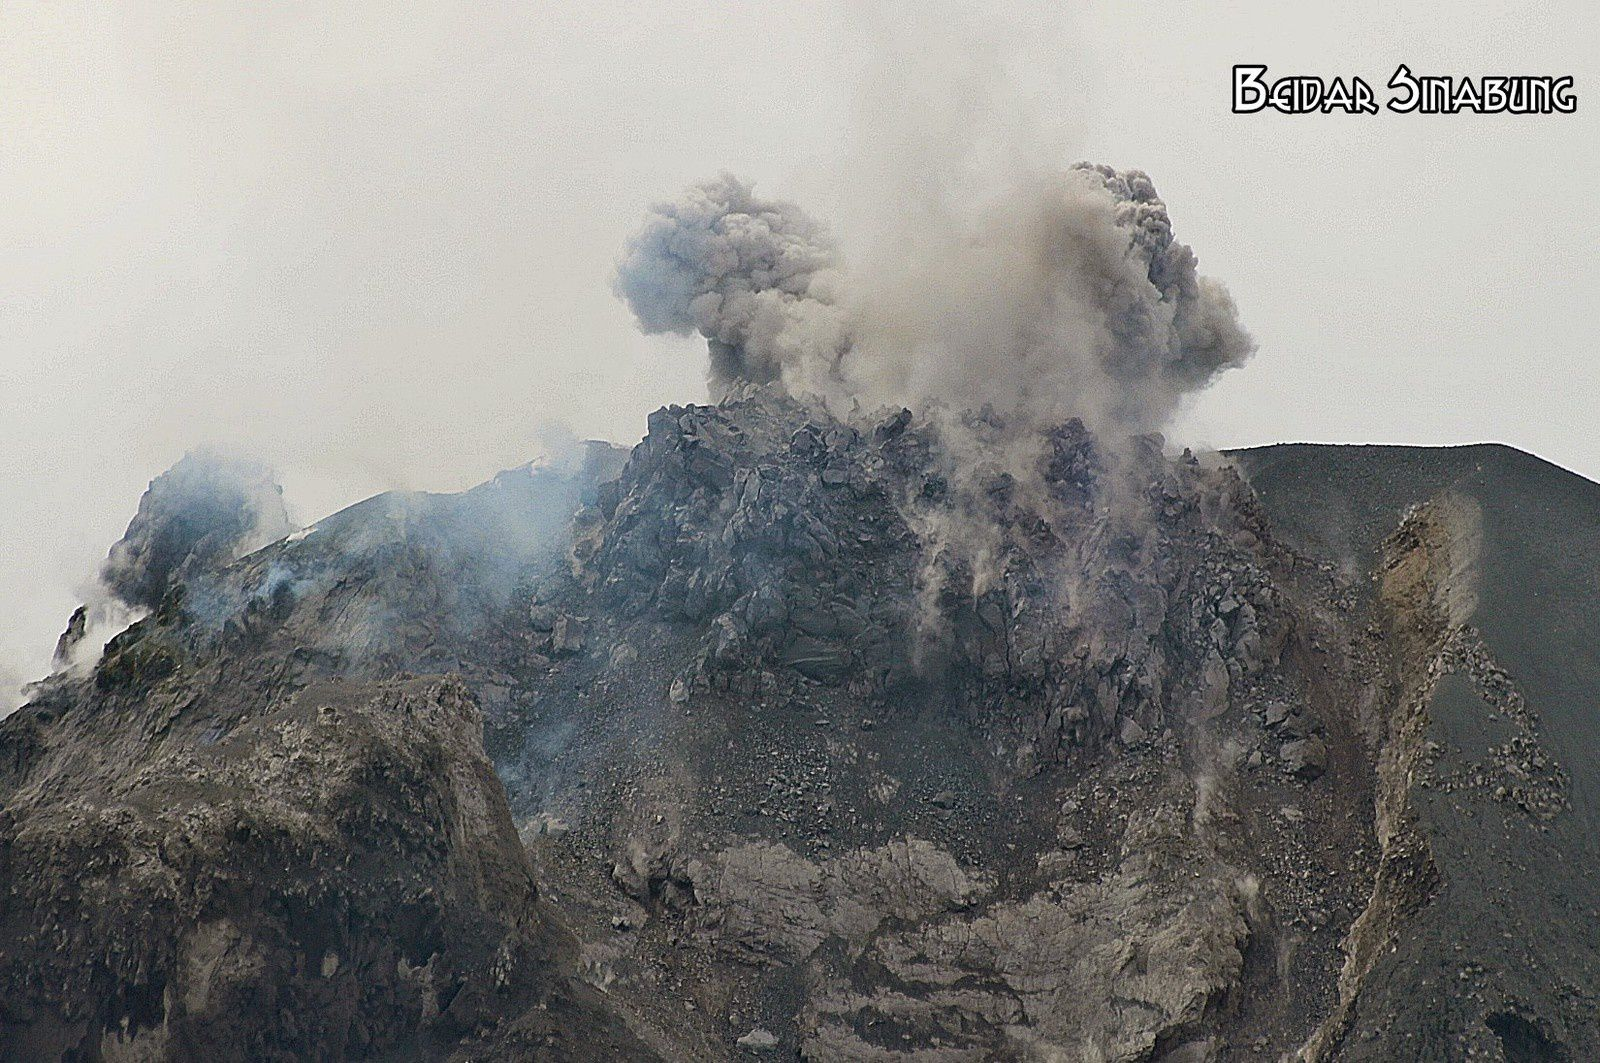 Sinabung - évents multiples et dôme - photo Firdaus surbakti via Beidar Sinabung